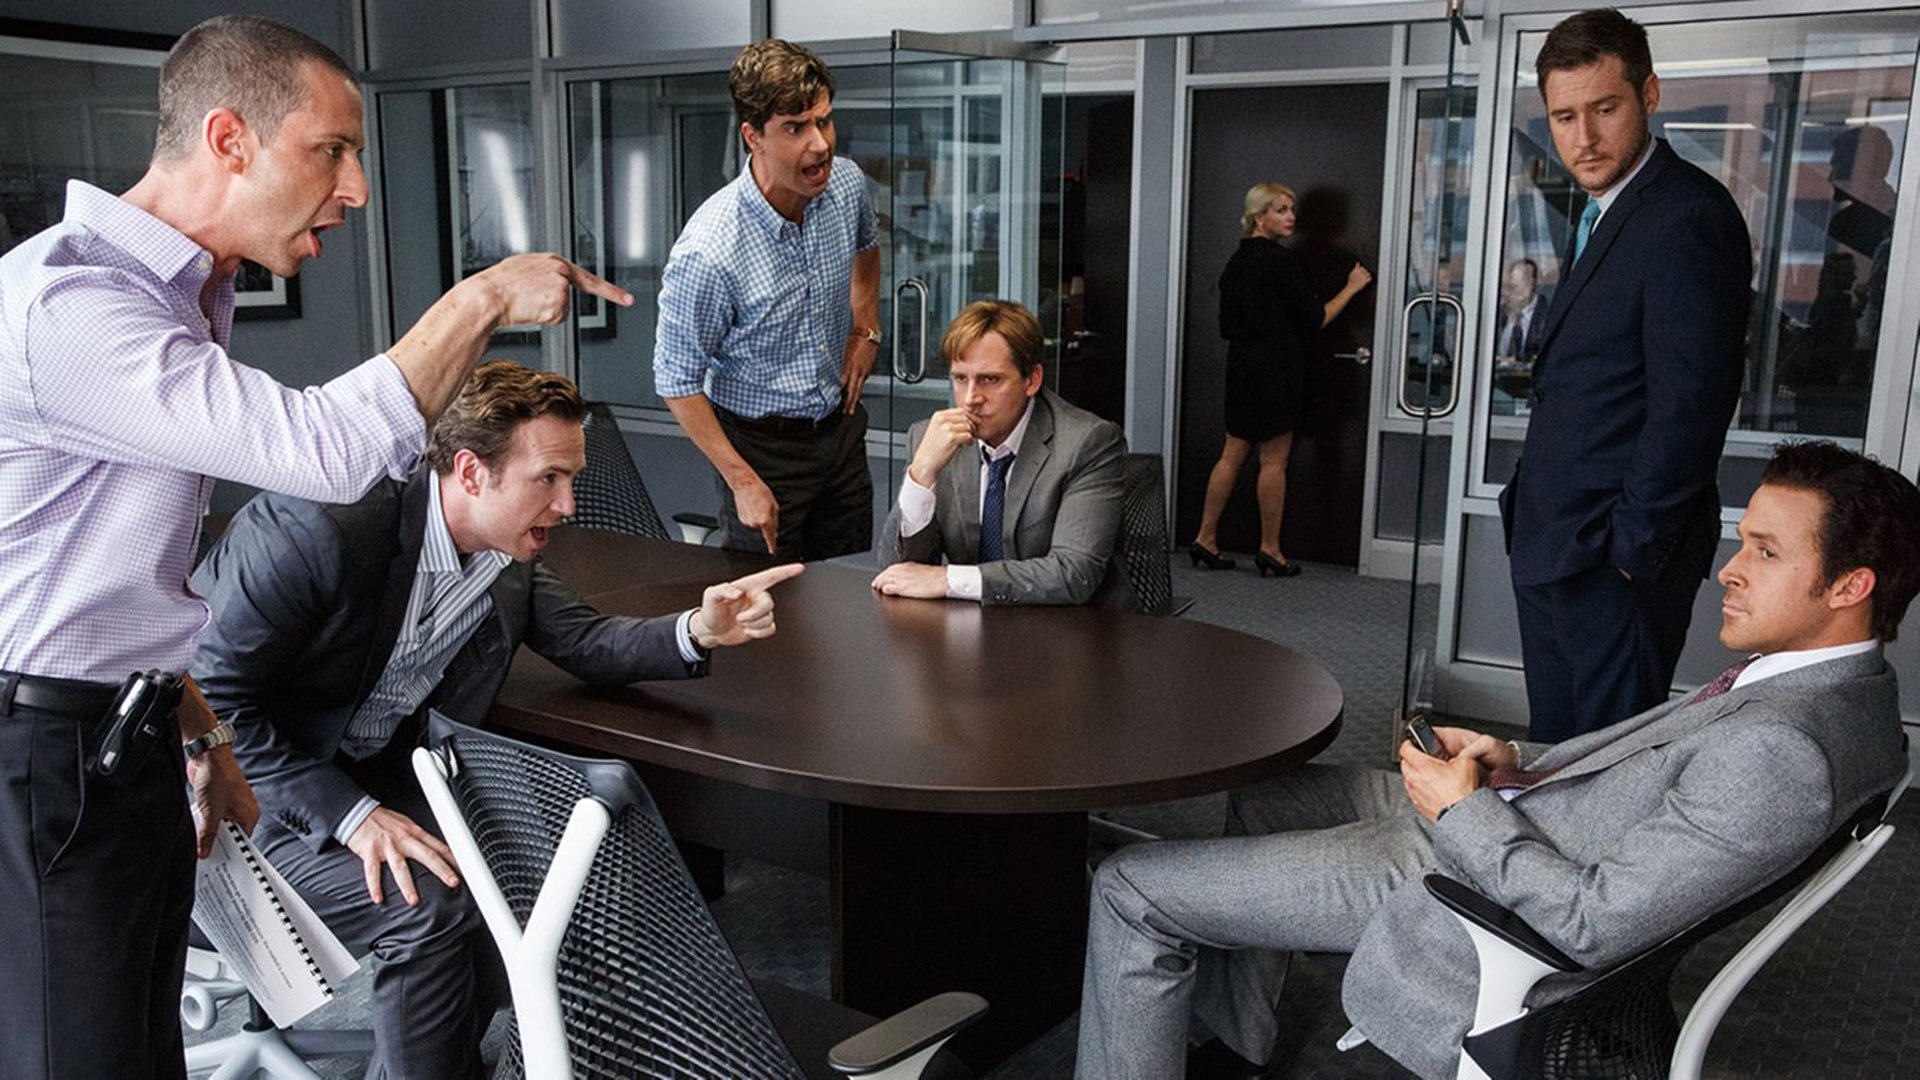 Jeremy Strong, Rafe Spall, Hamish Linklater, Steve Carell, Jeffry Griffin and Ryan Gosling star in The Big Short.